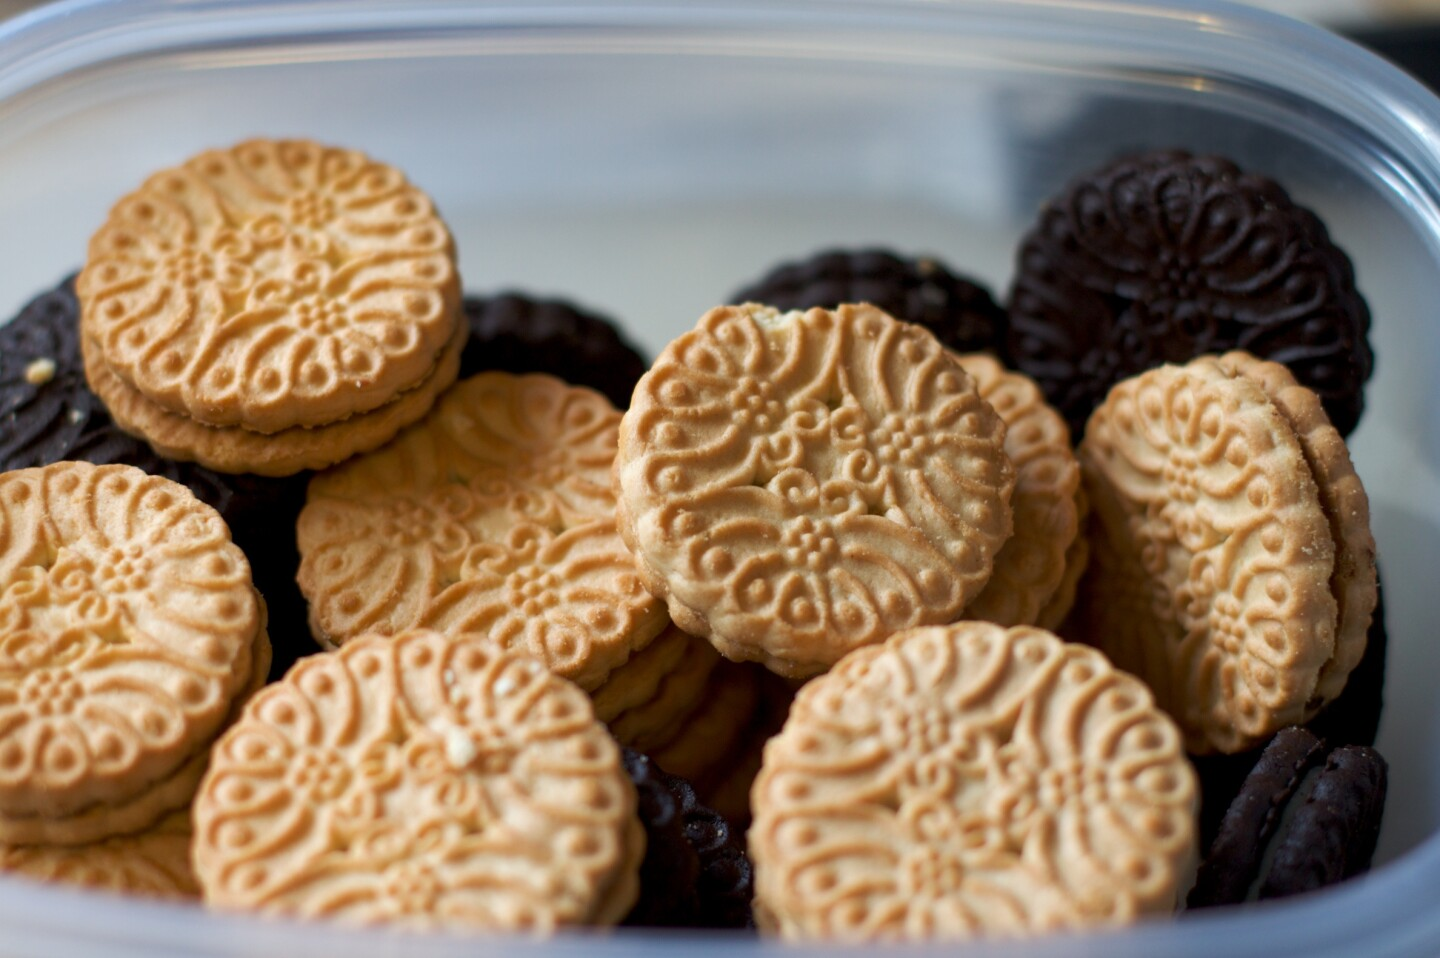 Vanilla and chocolate sandwich cookies with a swirly top sit in a small plastic container.